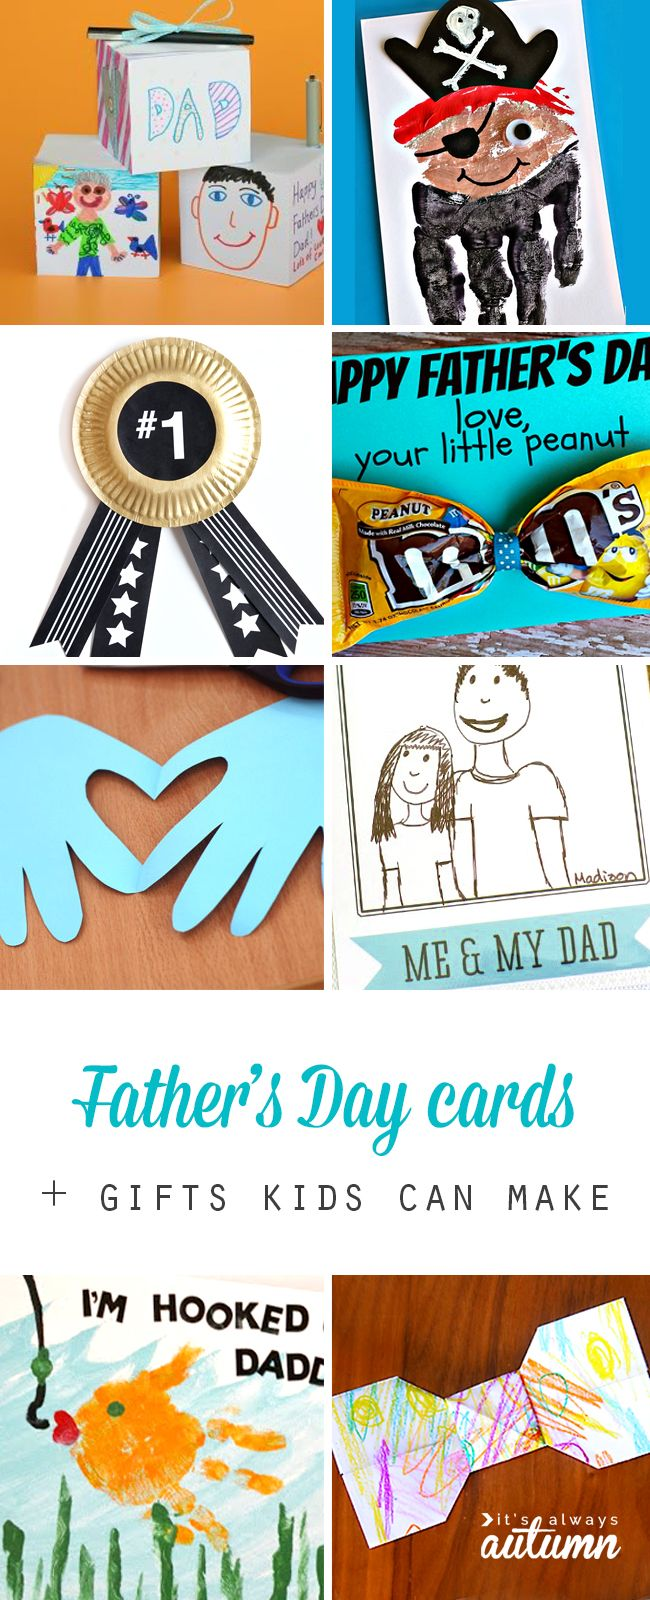 fathers-day-cards-kids-can-make-gifts-DIY-easy-fun-for-dad-pinnable.jpg 650×1,600 pixels